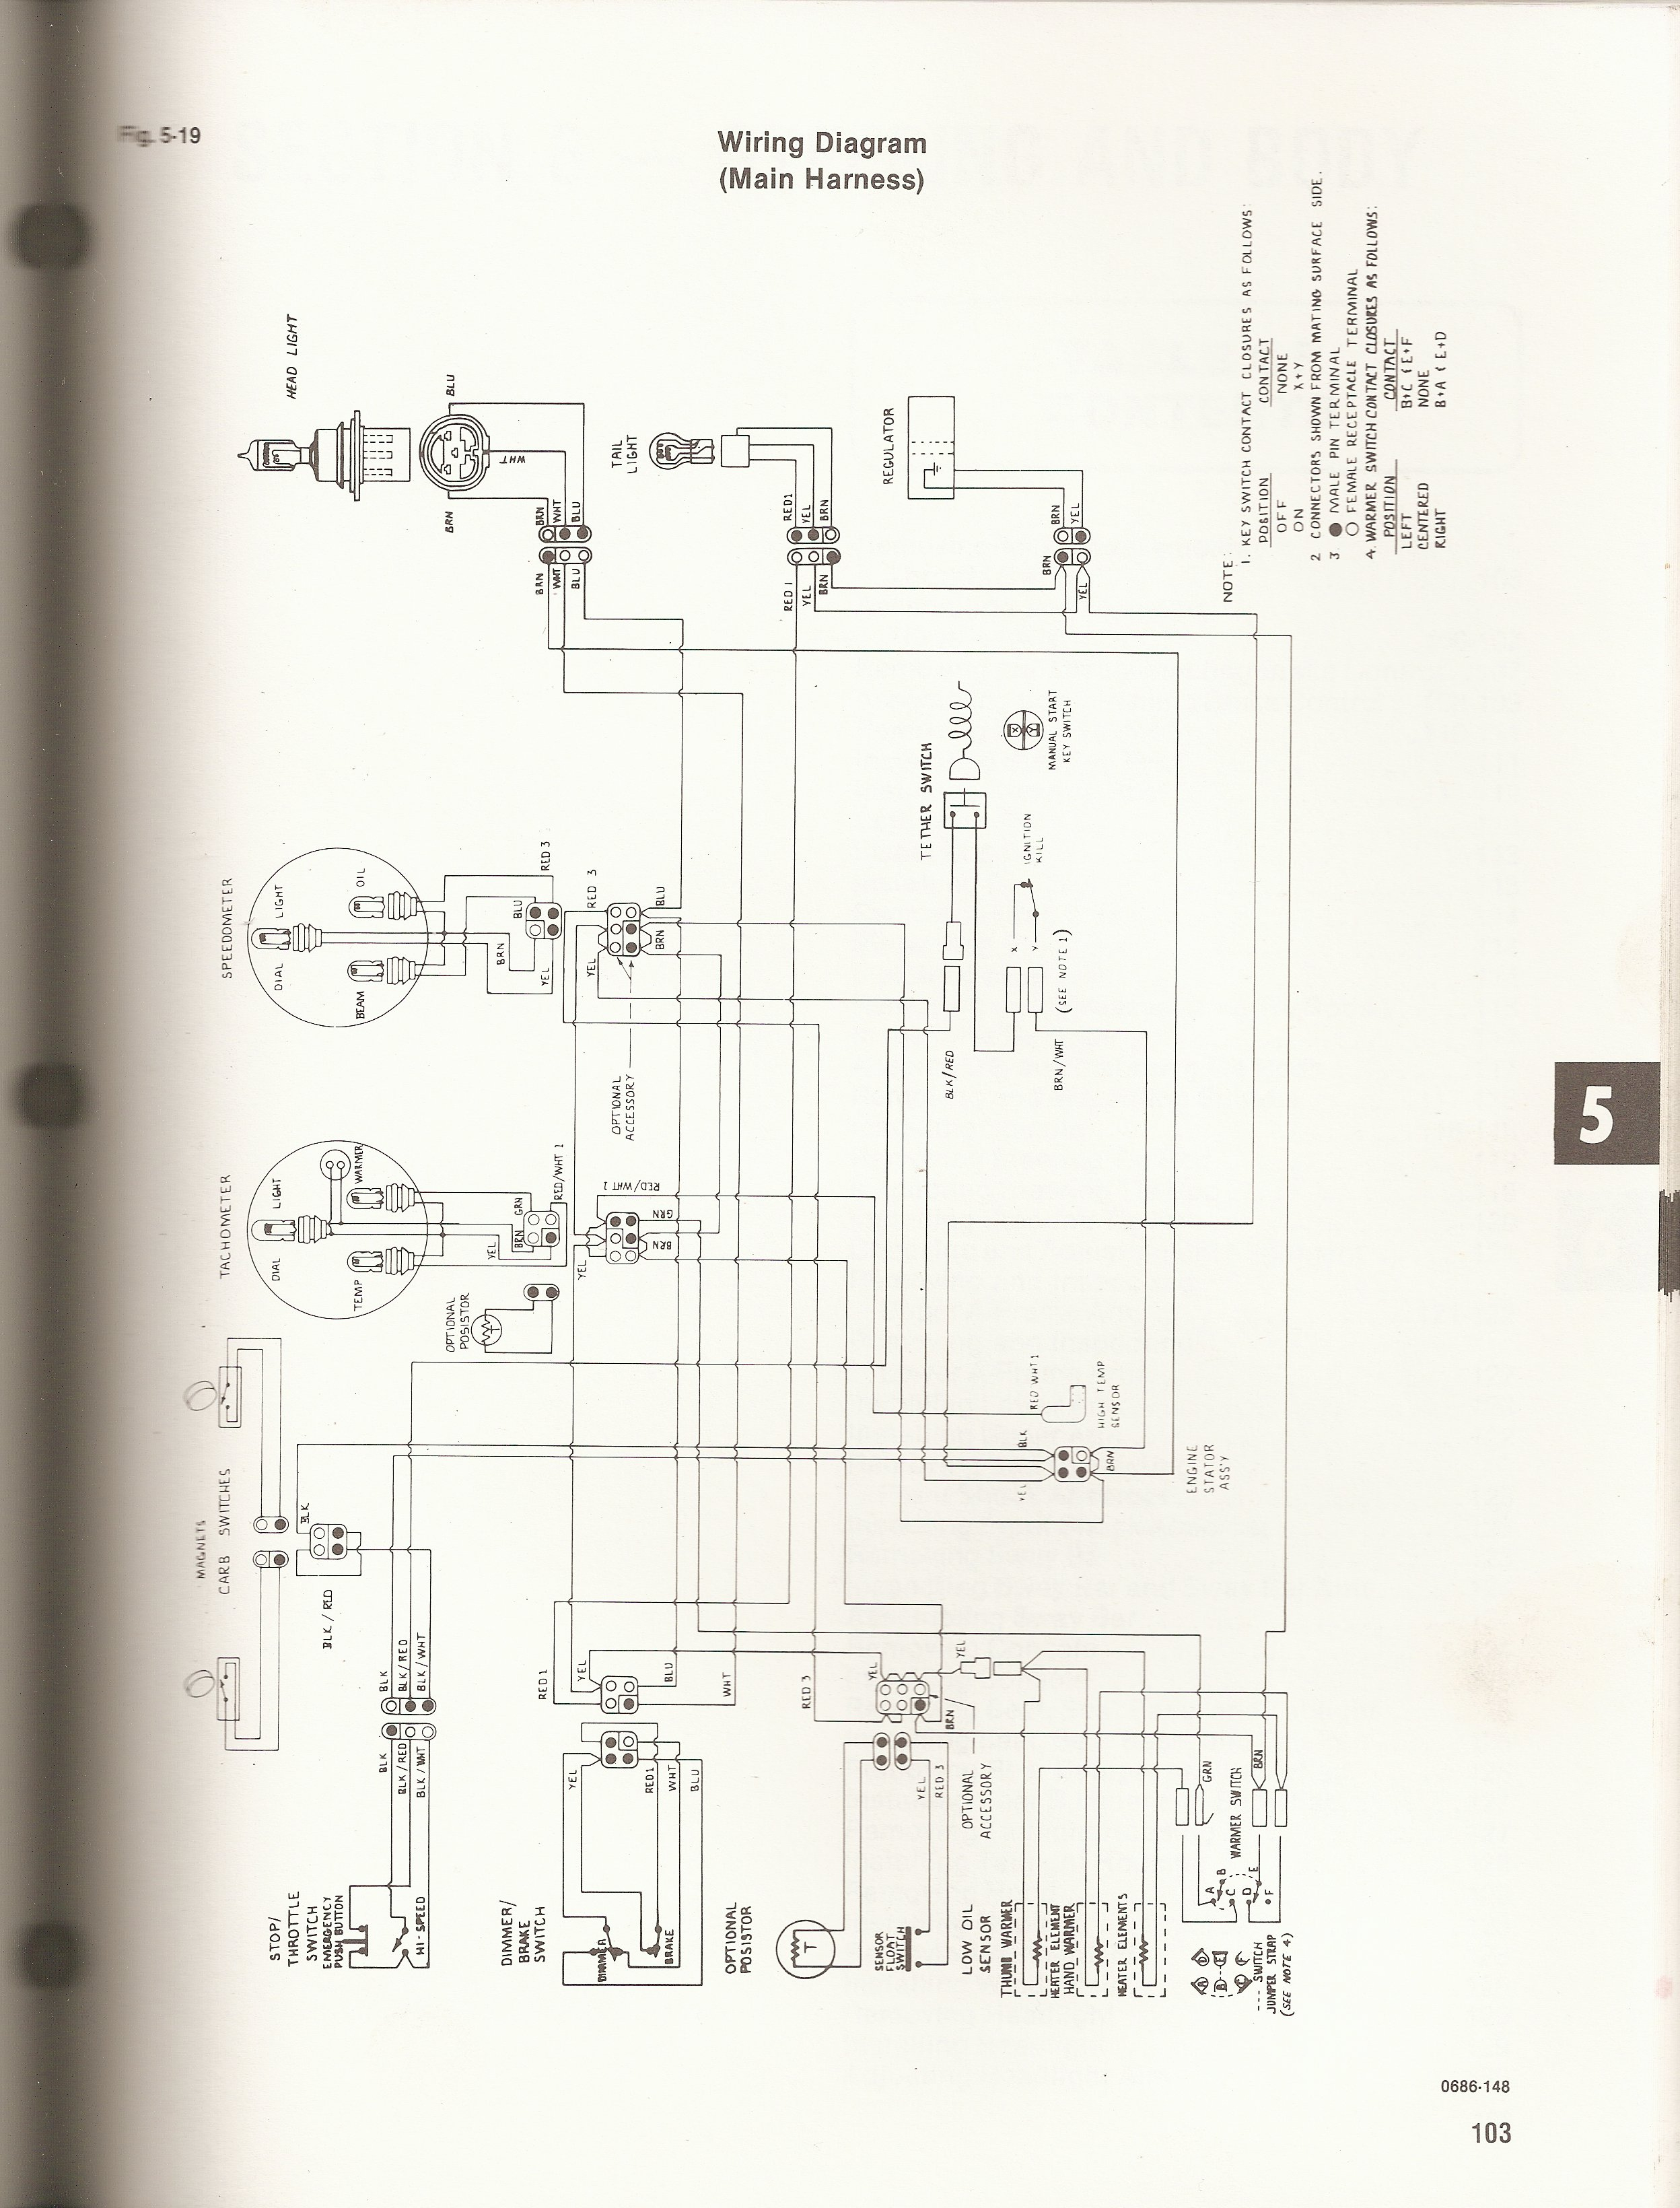 92 Cougar Wiring Diagram - Today Wiring Diagram - Ez Go Golf Cart Battery Wiring Diagram